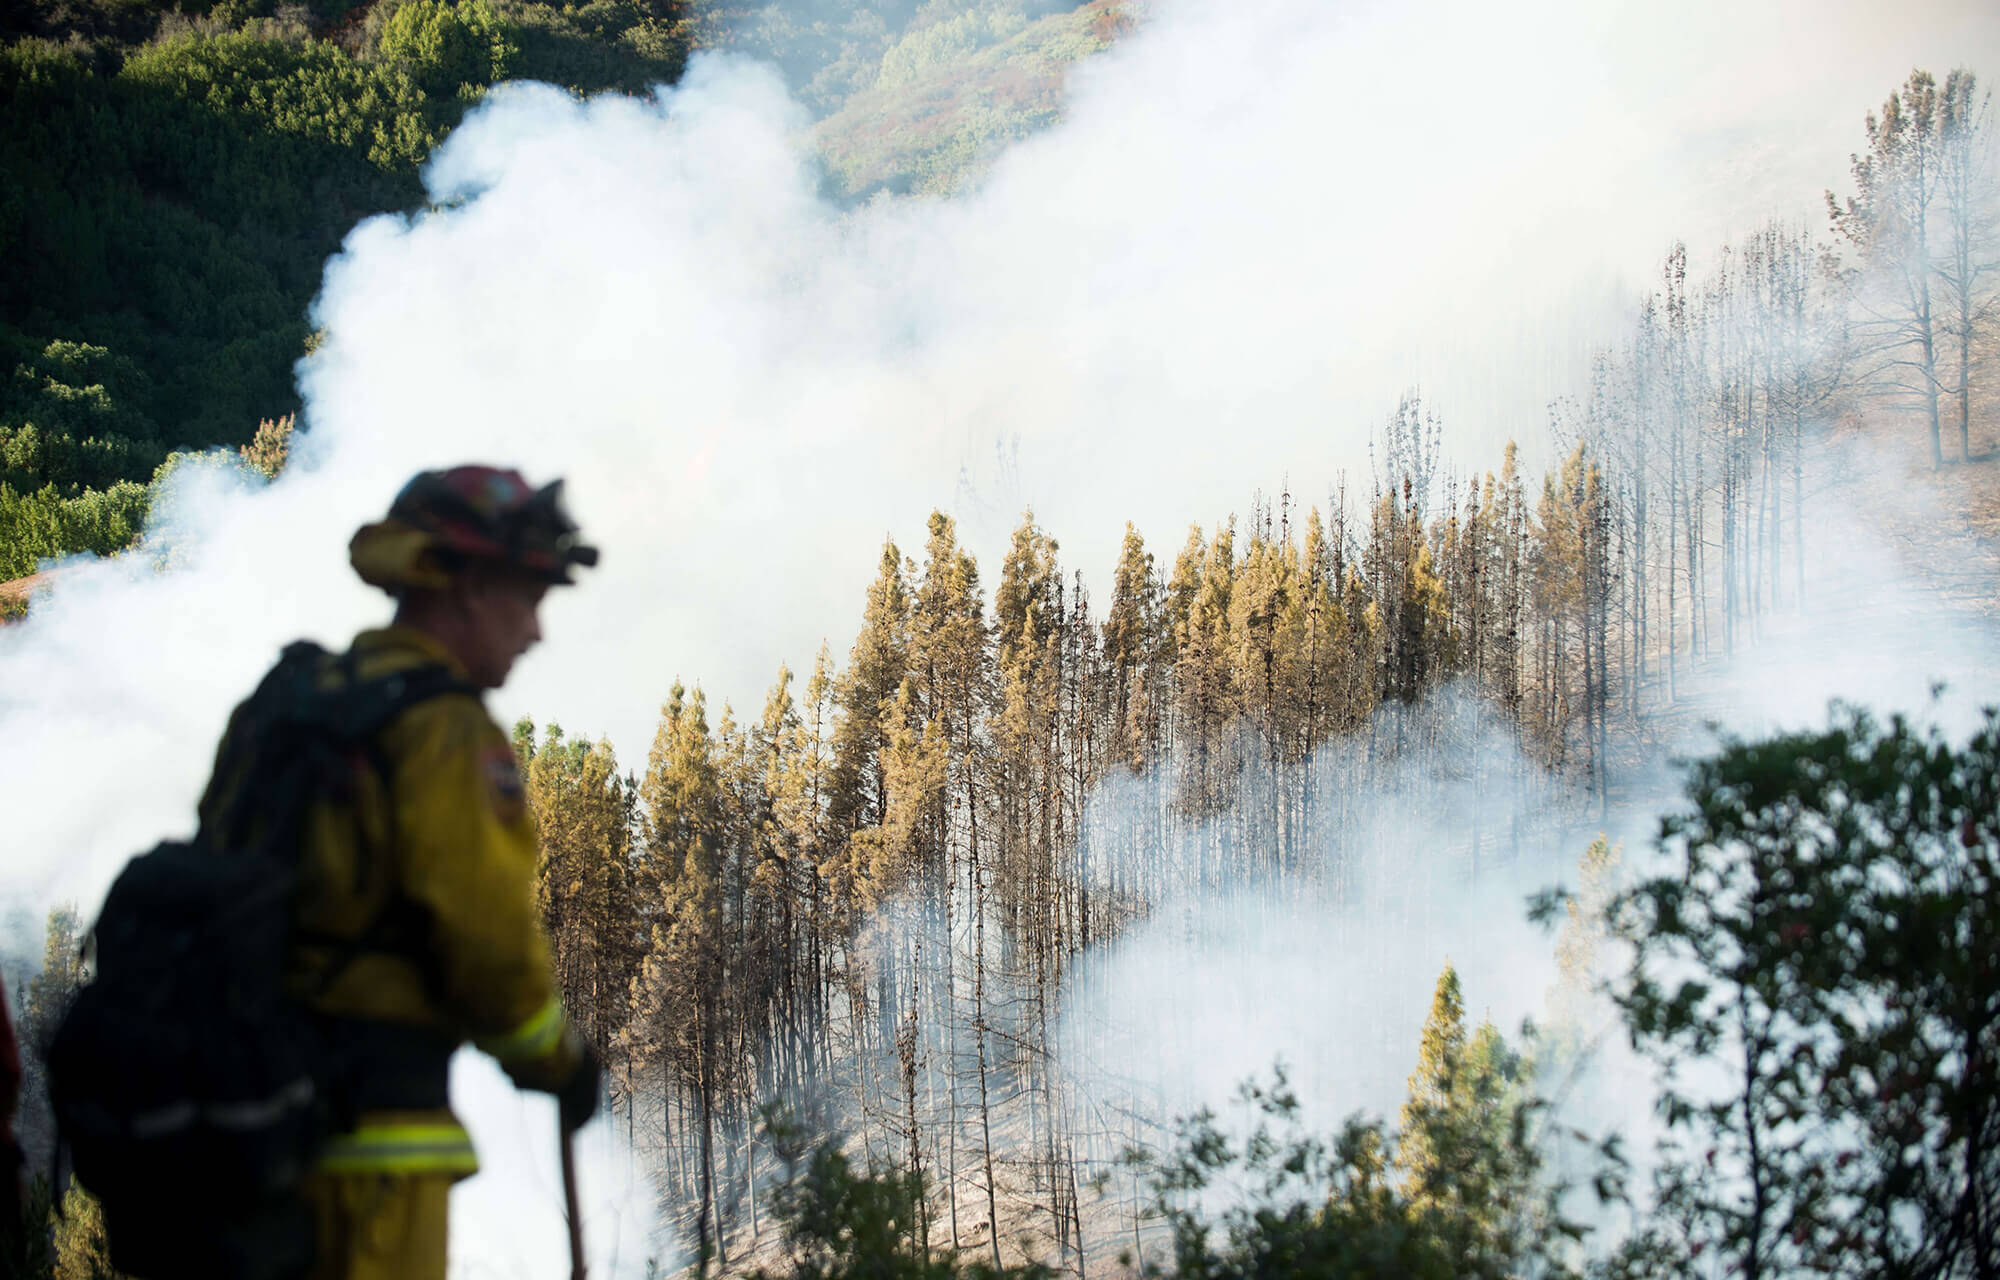 Image of firefighter in front of wildfire